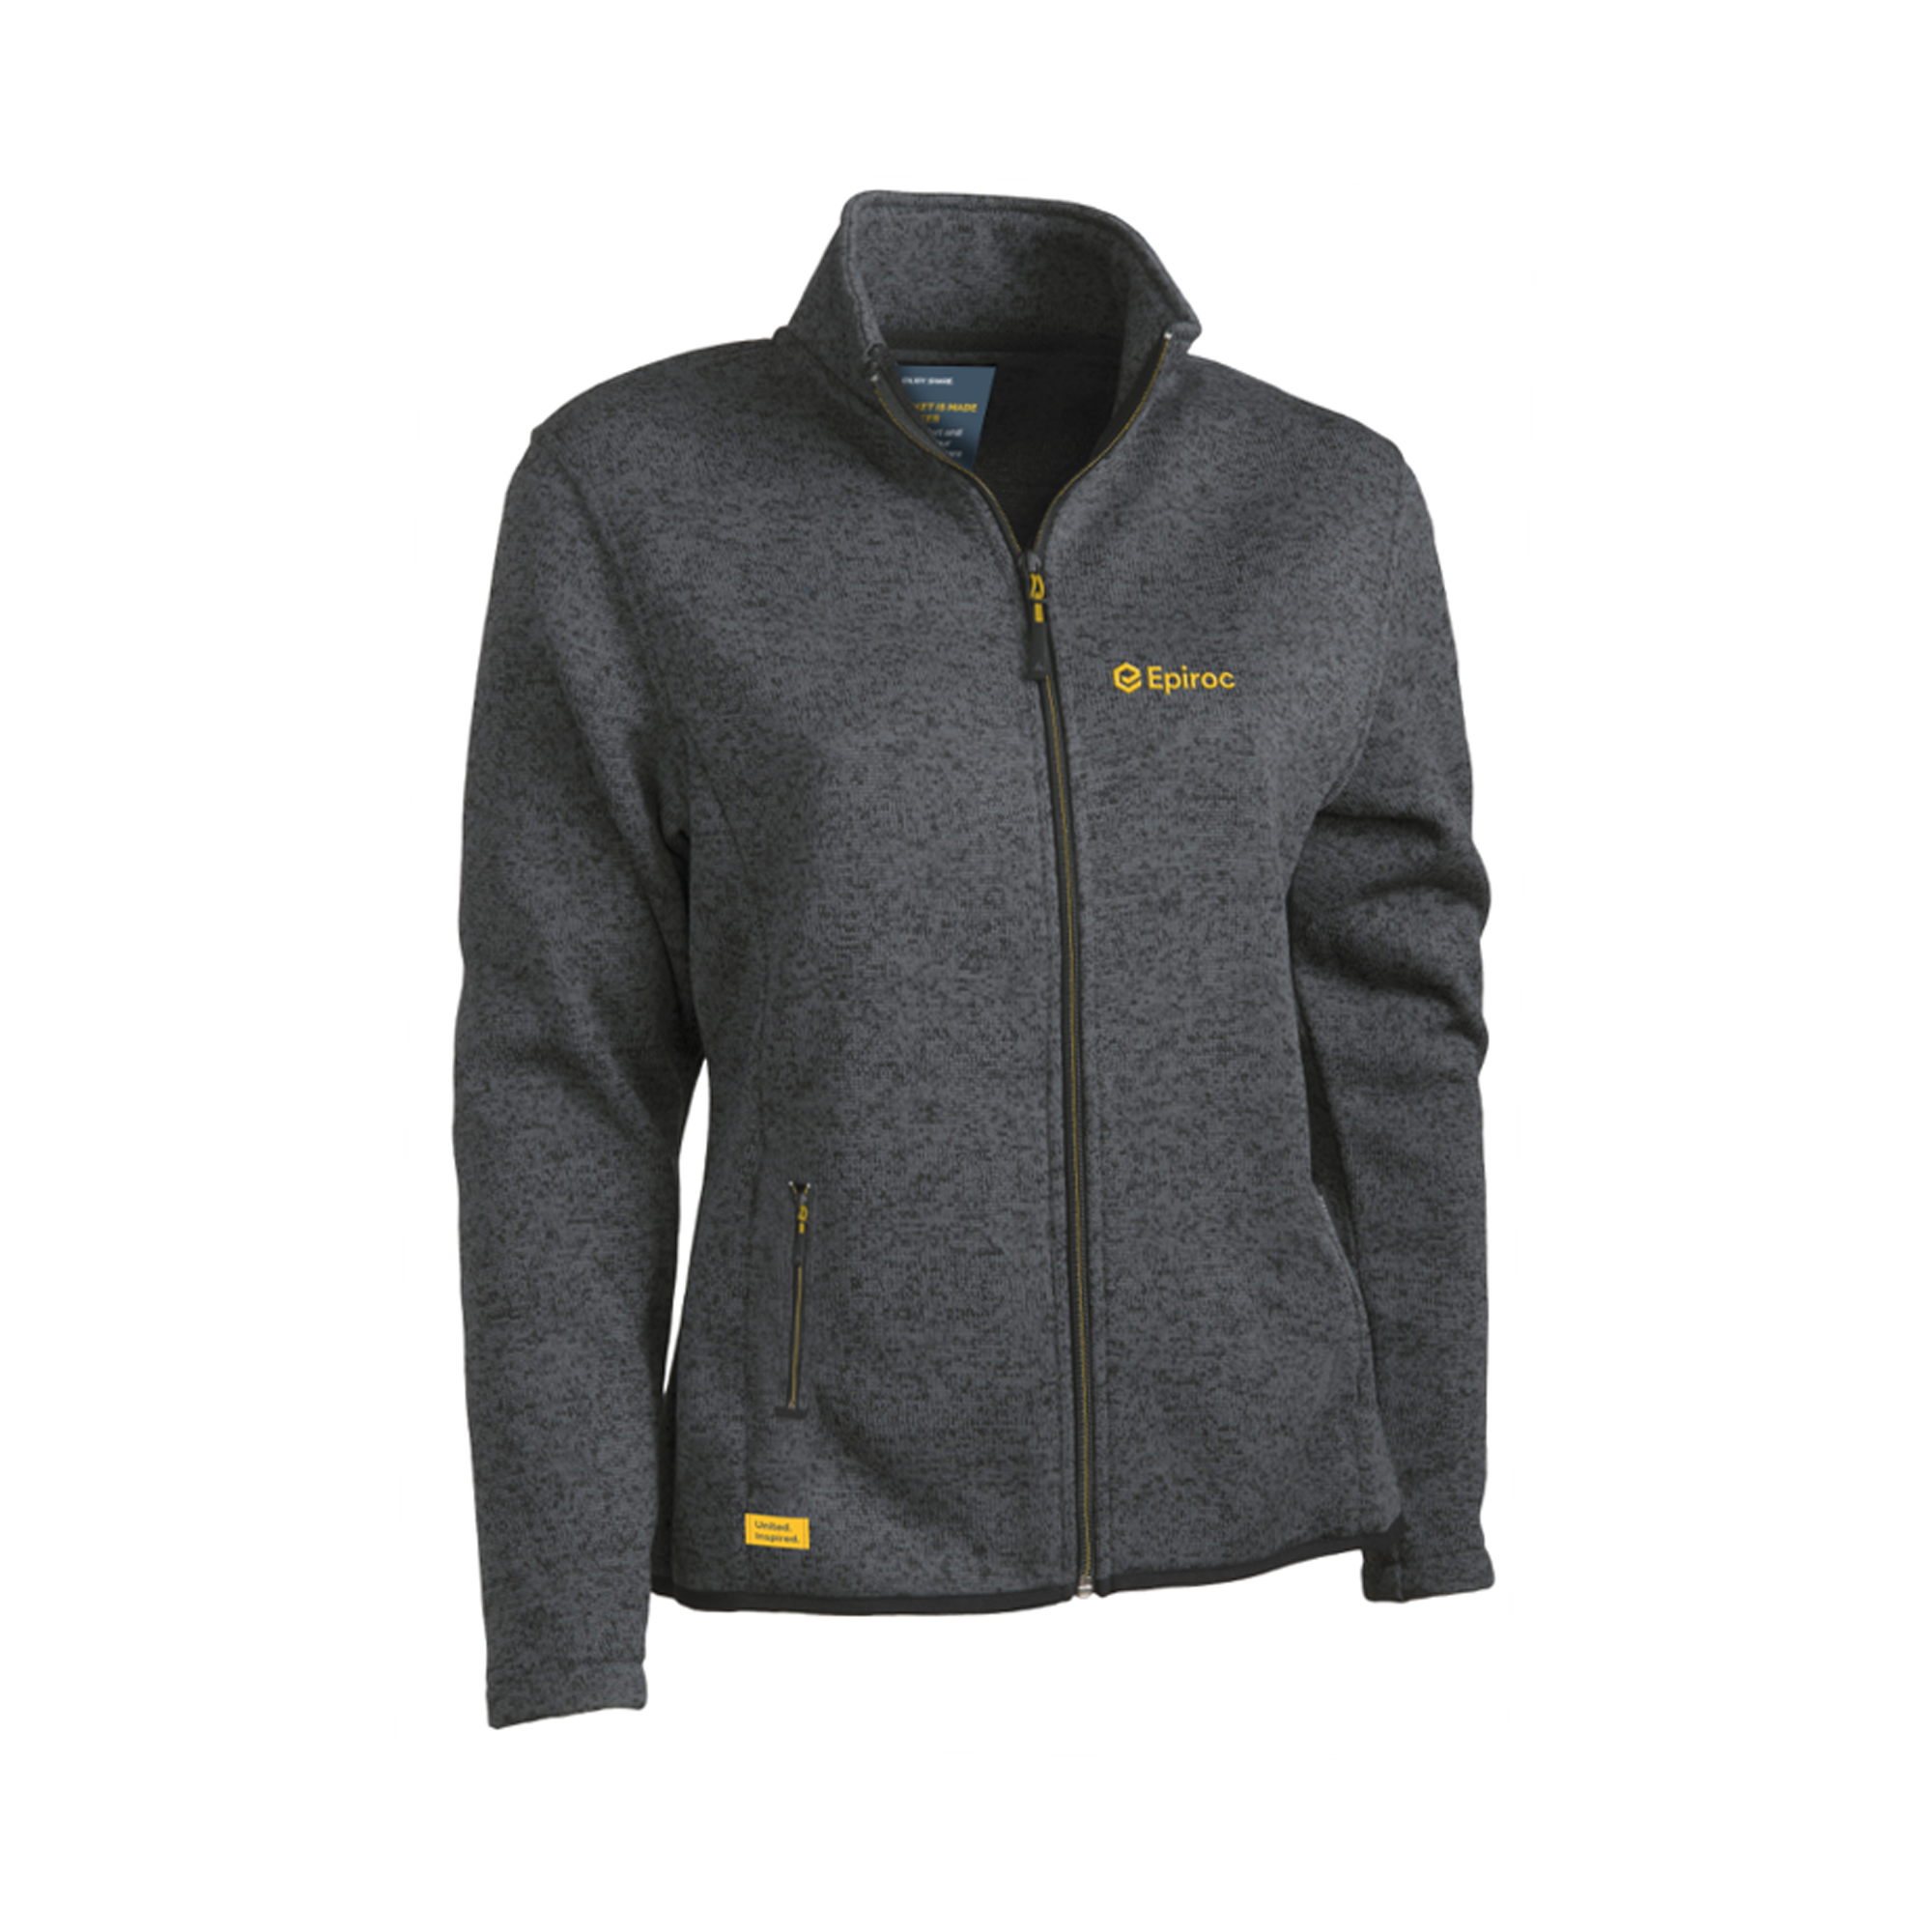 Smoothly knitted fleece jacket in anti-pilling polyester. Reversed zippers with yellow details. Grey mélange in your own PMS color. Unisex sizes.